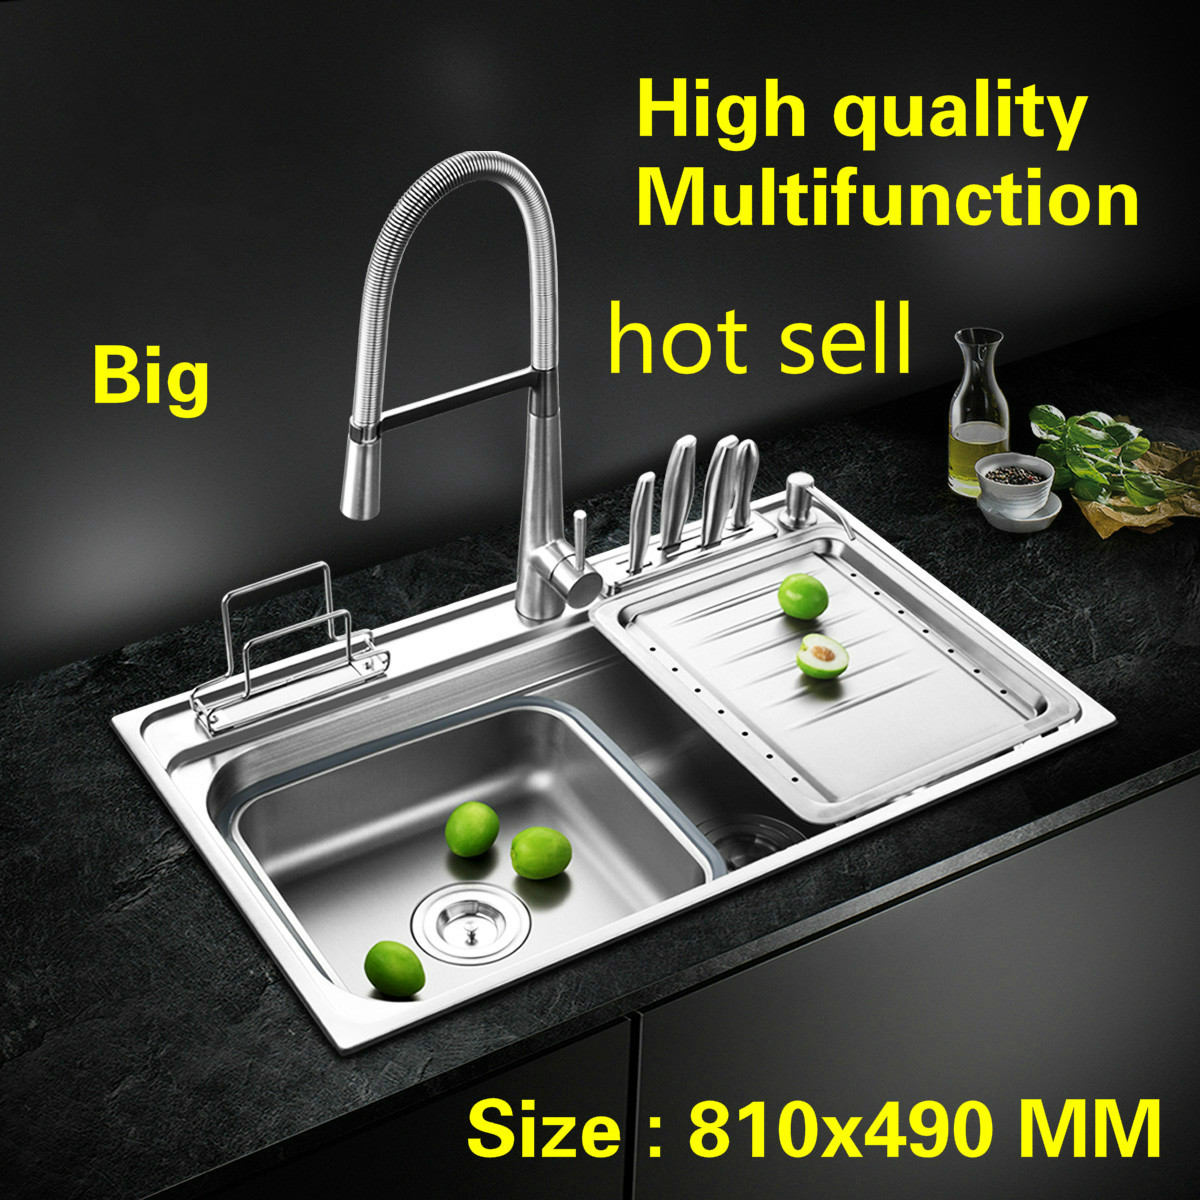 Free shipping Standard kitchen single trough sink big luxury fashion food-grade 304 stainless steel hot sell 810x490 MMFree shipping Standard kitchen single trough sink big luxury fashion food-grade 304 stainless steel hot sell 810x490 MM